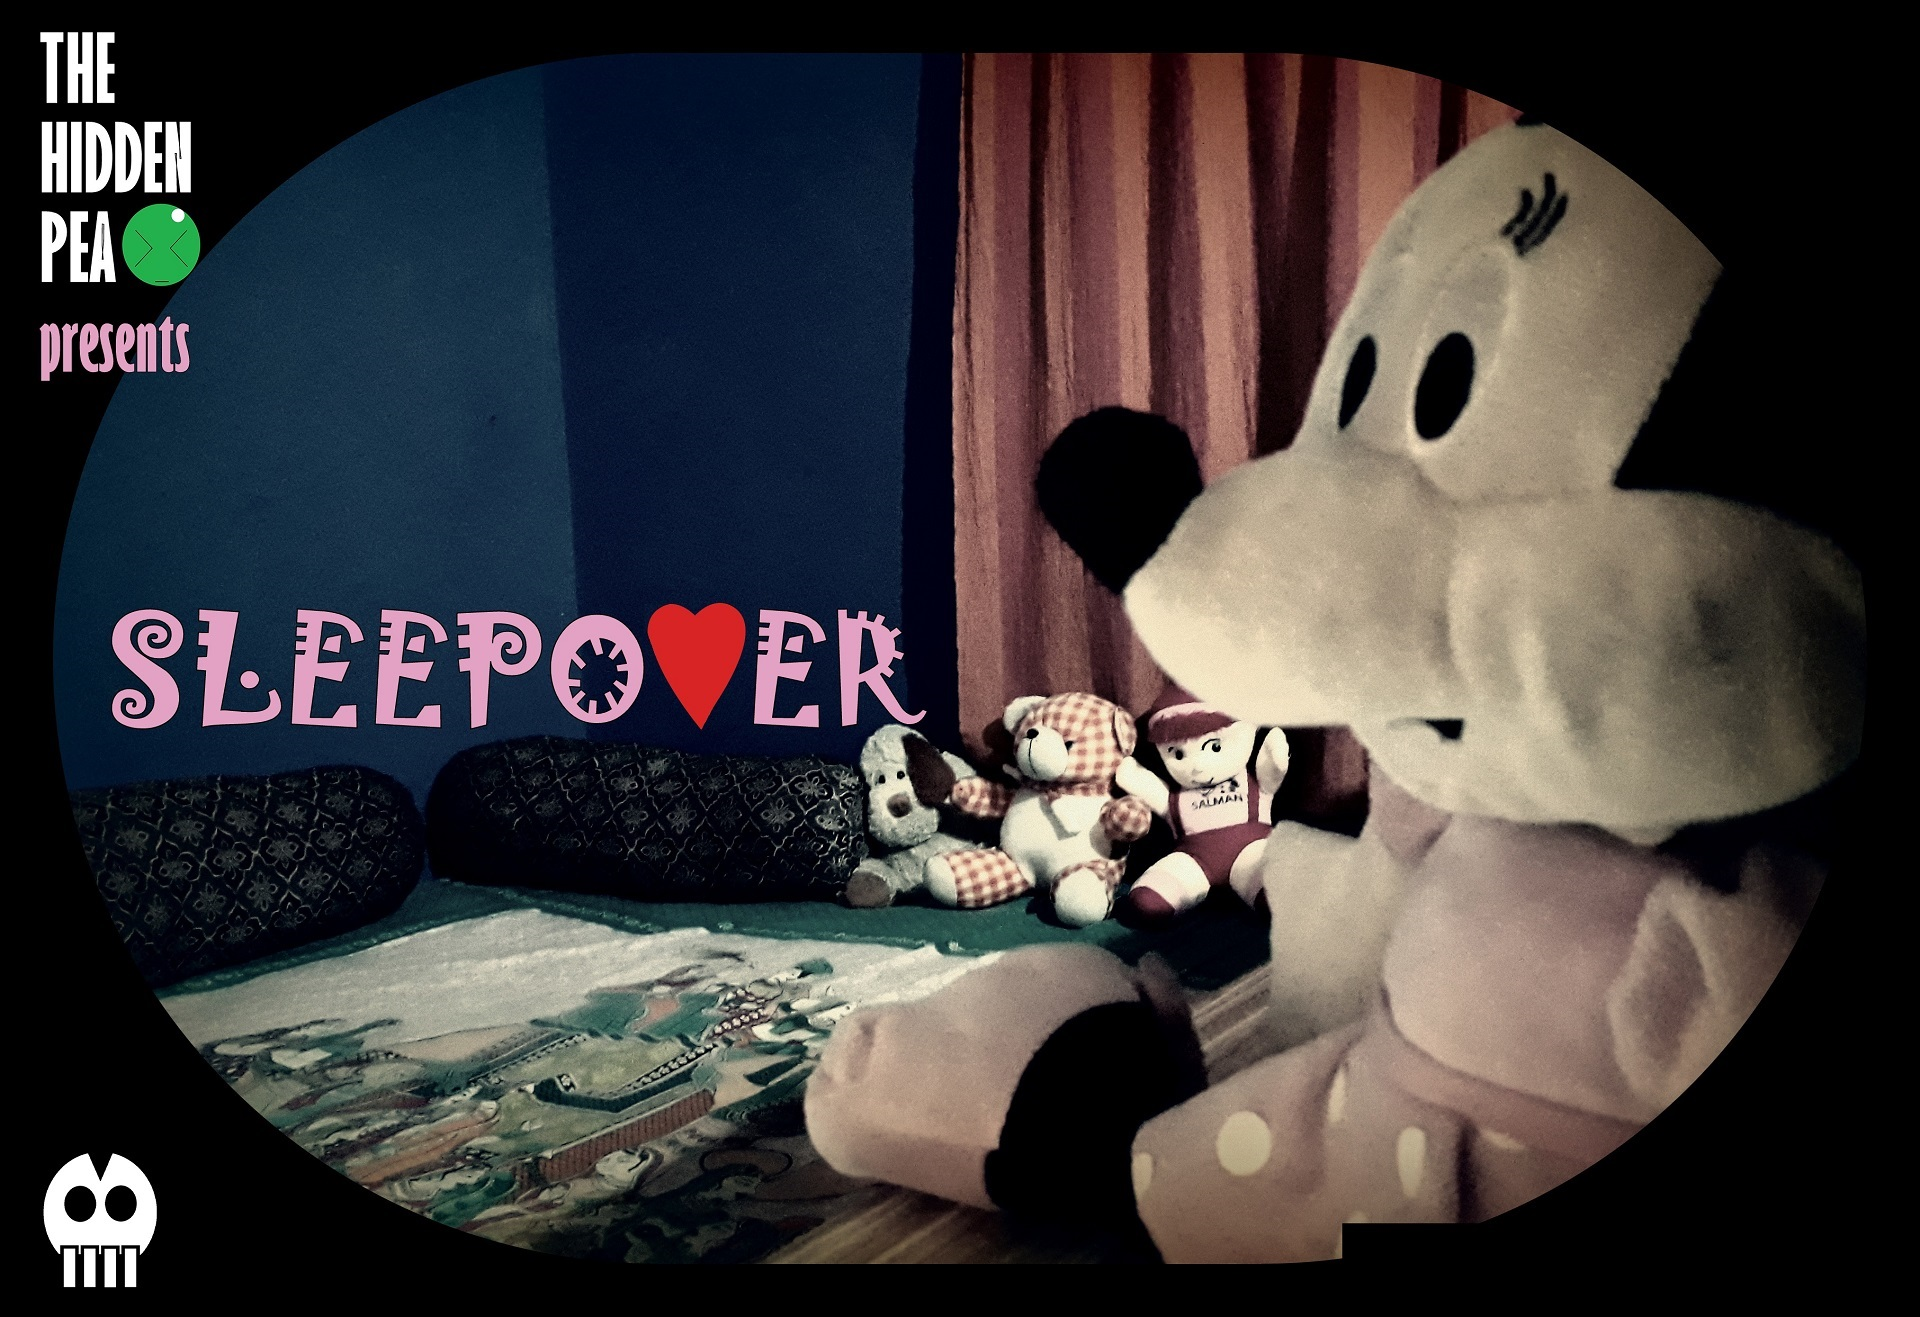 Sleepover short film poster